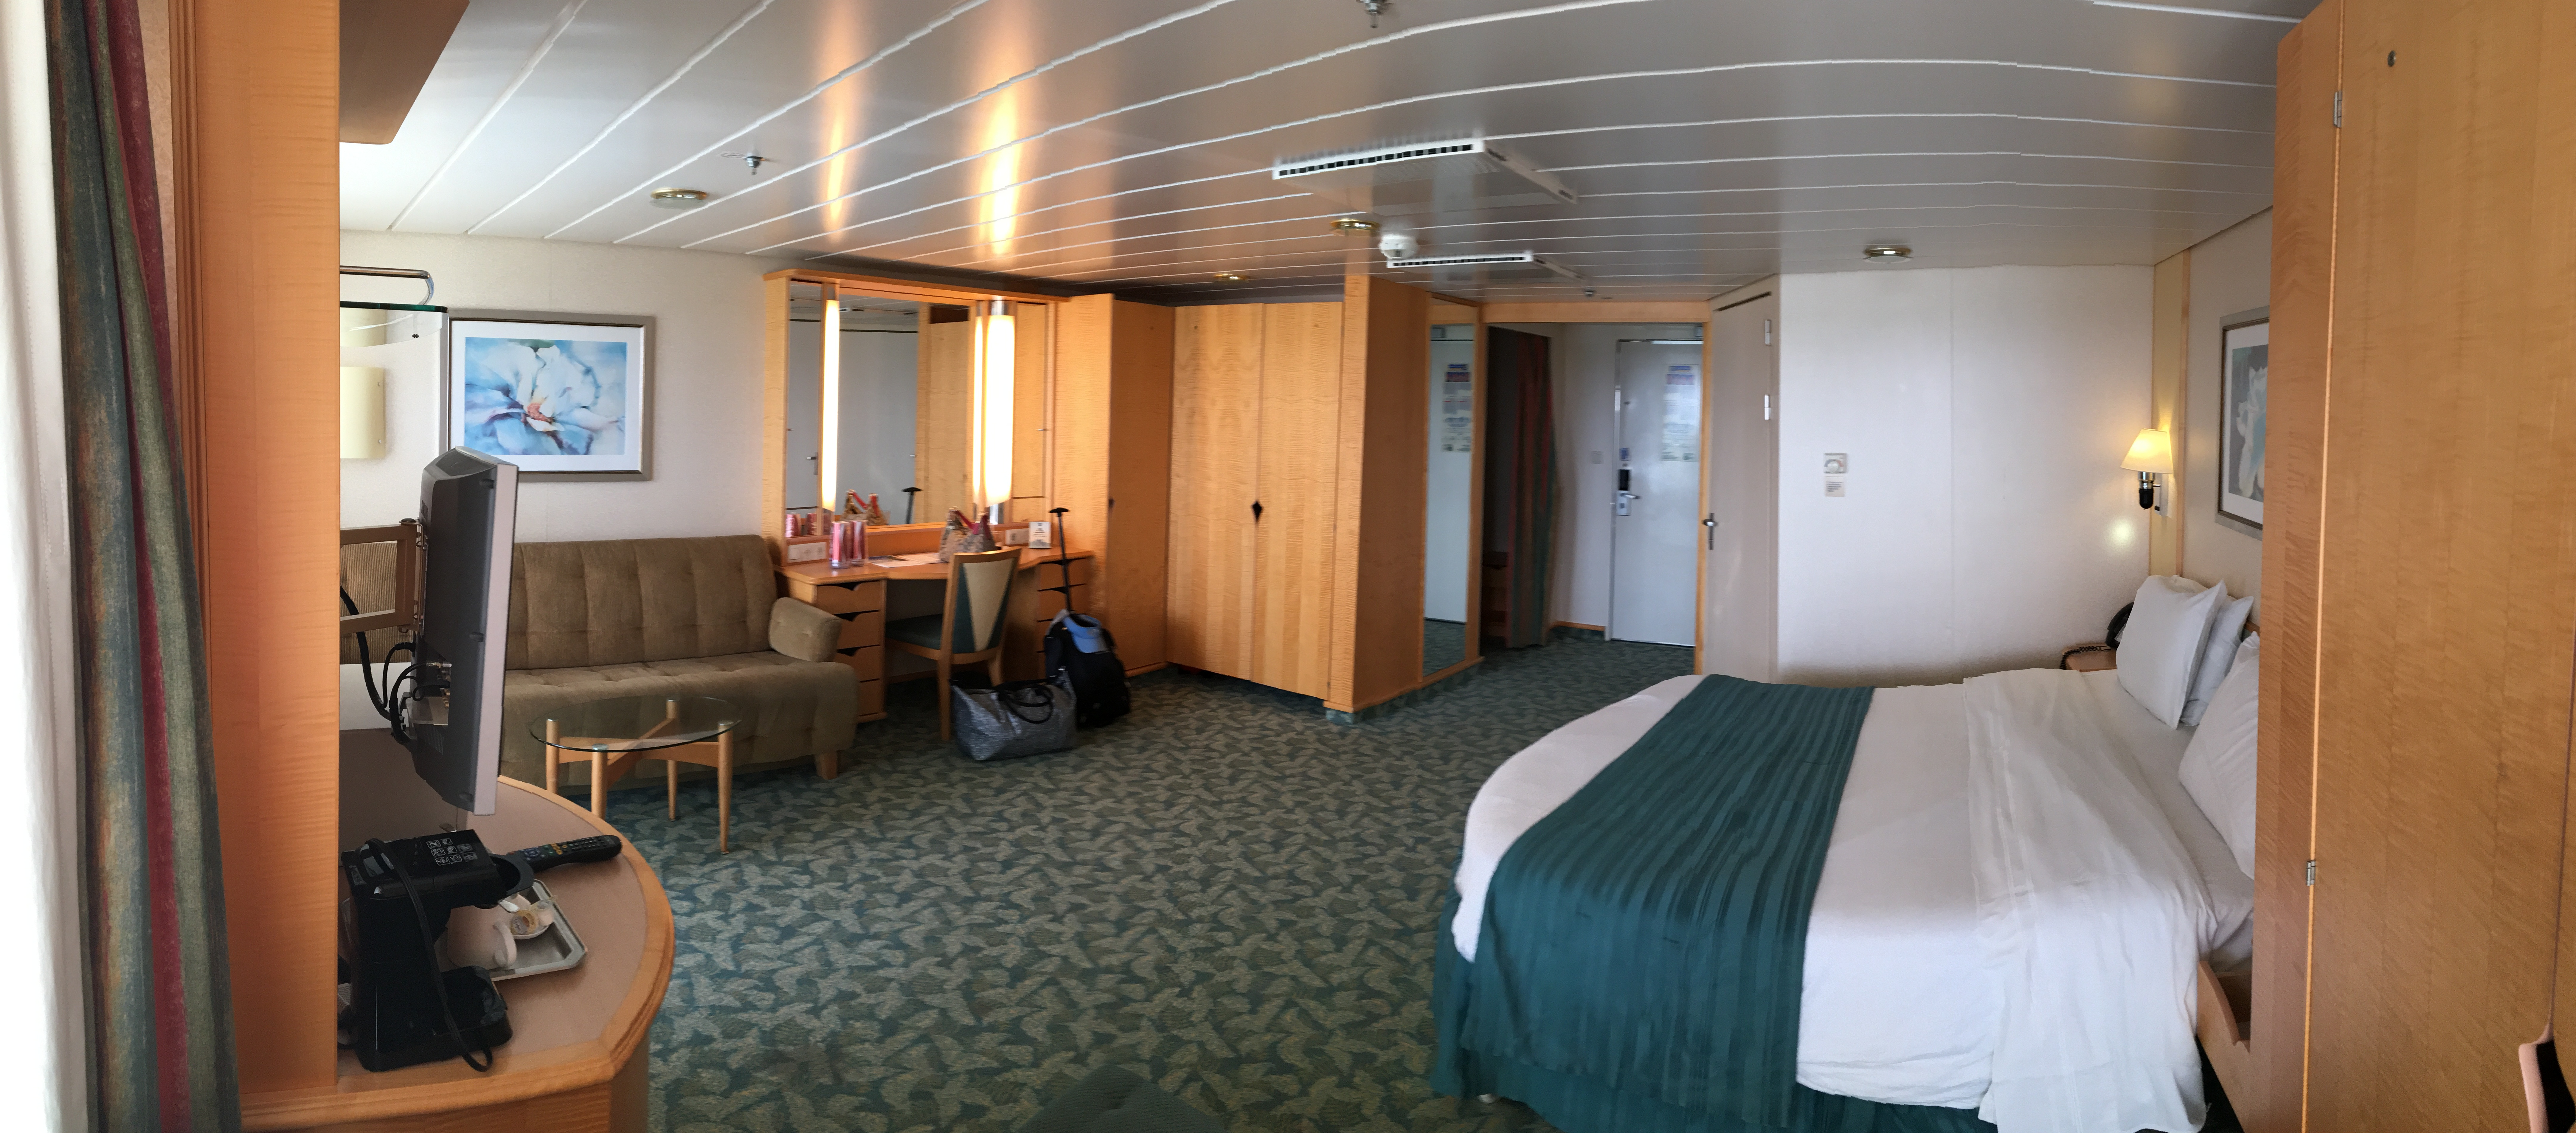 Pictures of cabin 1328 on freedom of the seas for Liberty of the seas best cabins